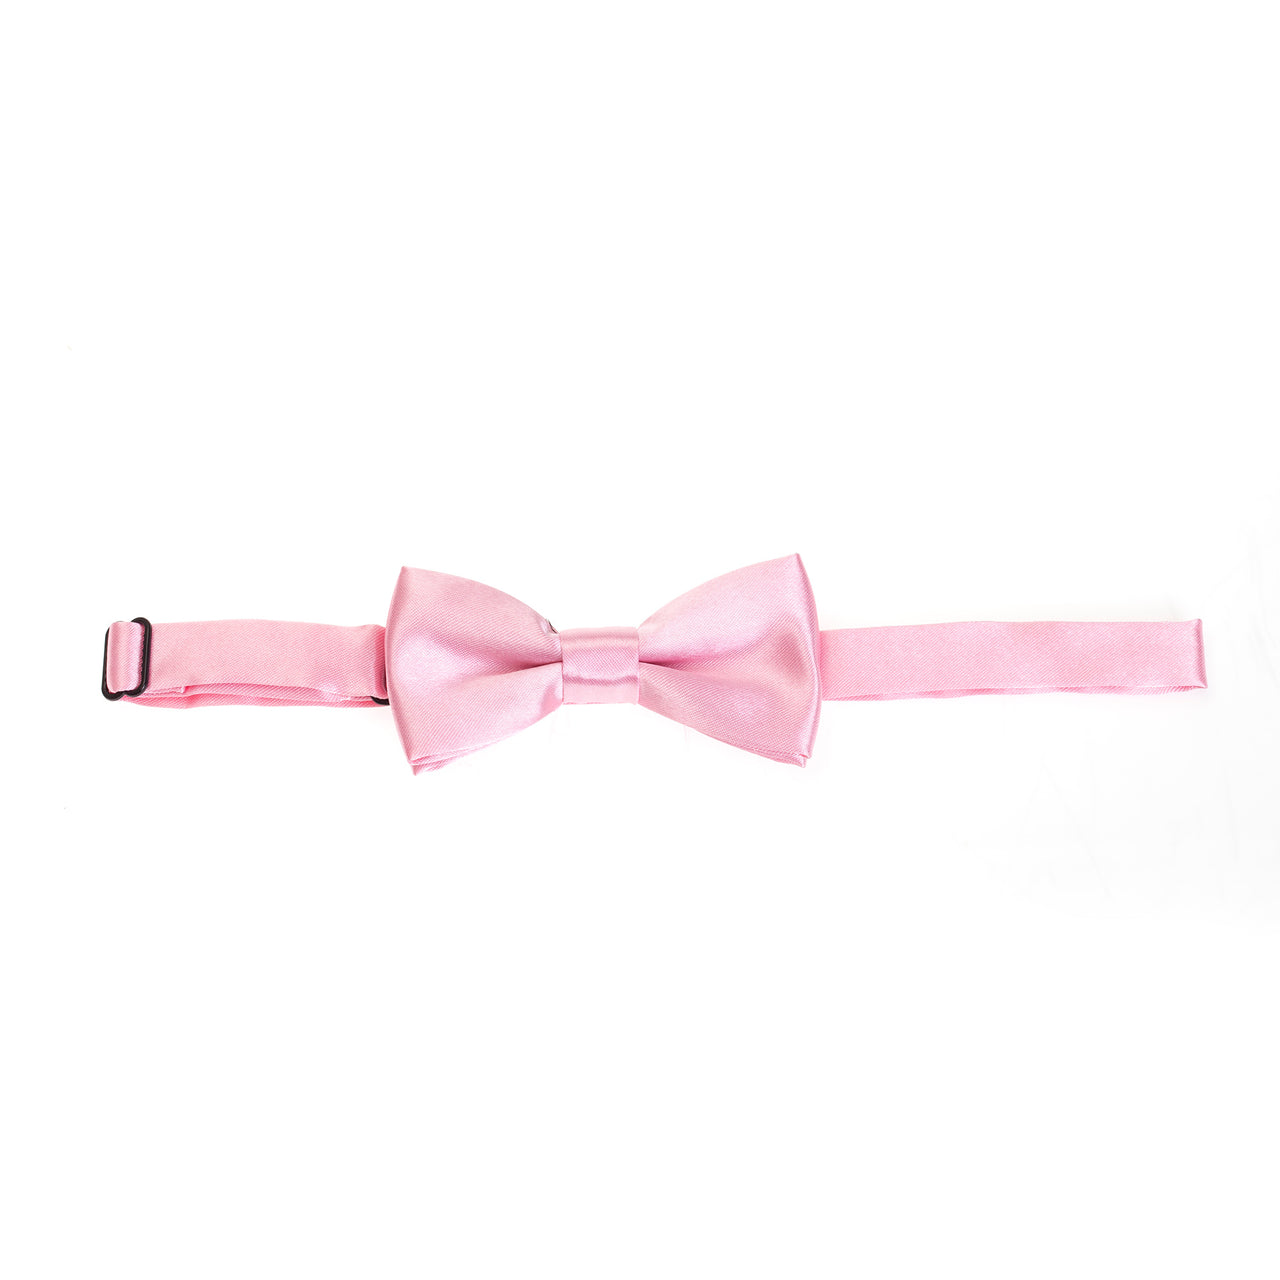 Kids Pre-tied Plain Satin Bow Tie - Baby Pink